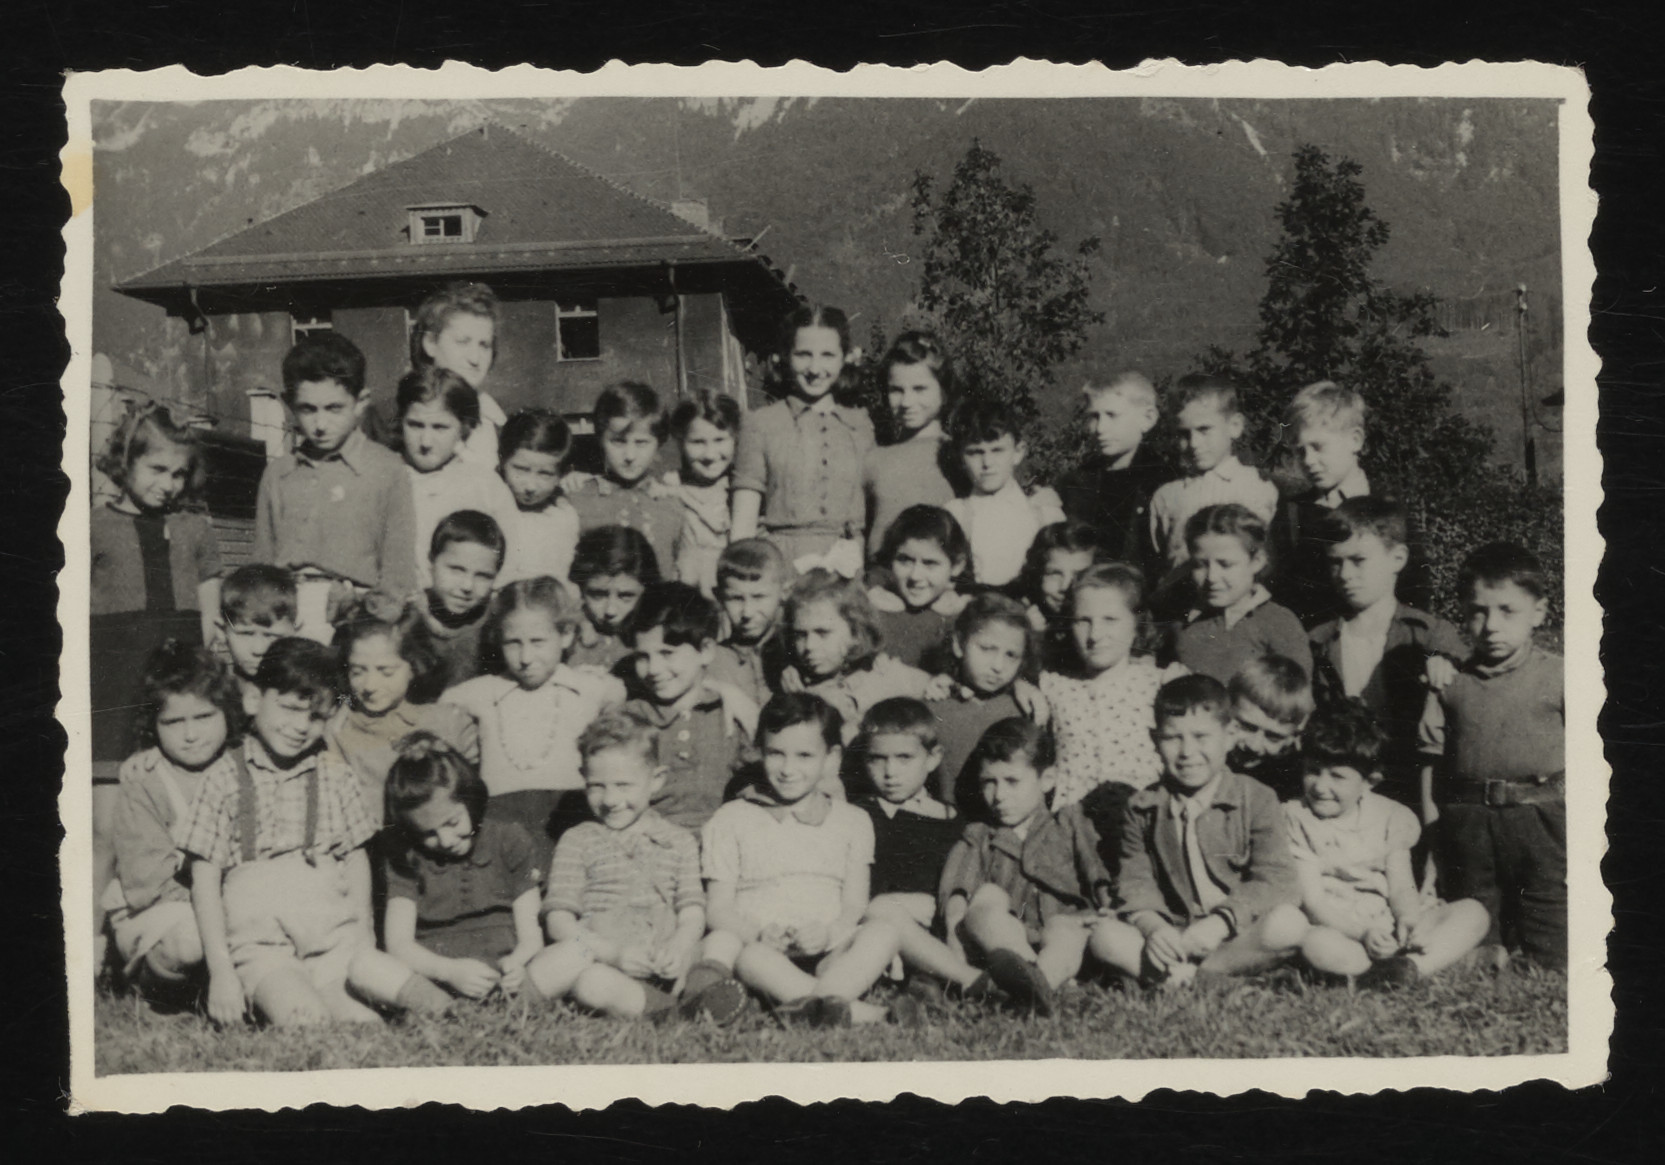 Group portrait of Jewish children in the Bad Reichenhall DP camp.  Among those pictured, eighth from the left in the top row, in the middle, is Cywia Perelmuter (now Sylvia Rozines).